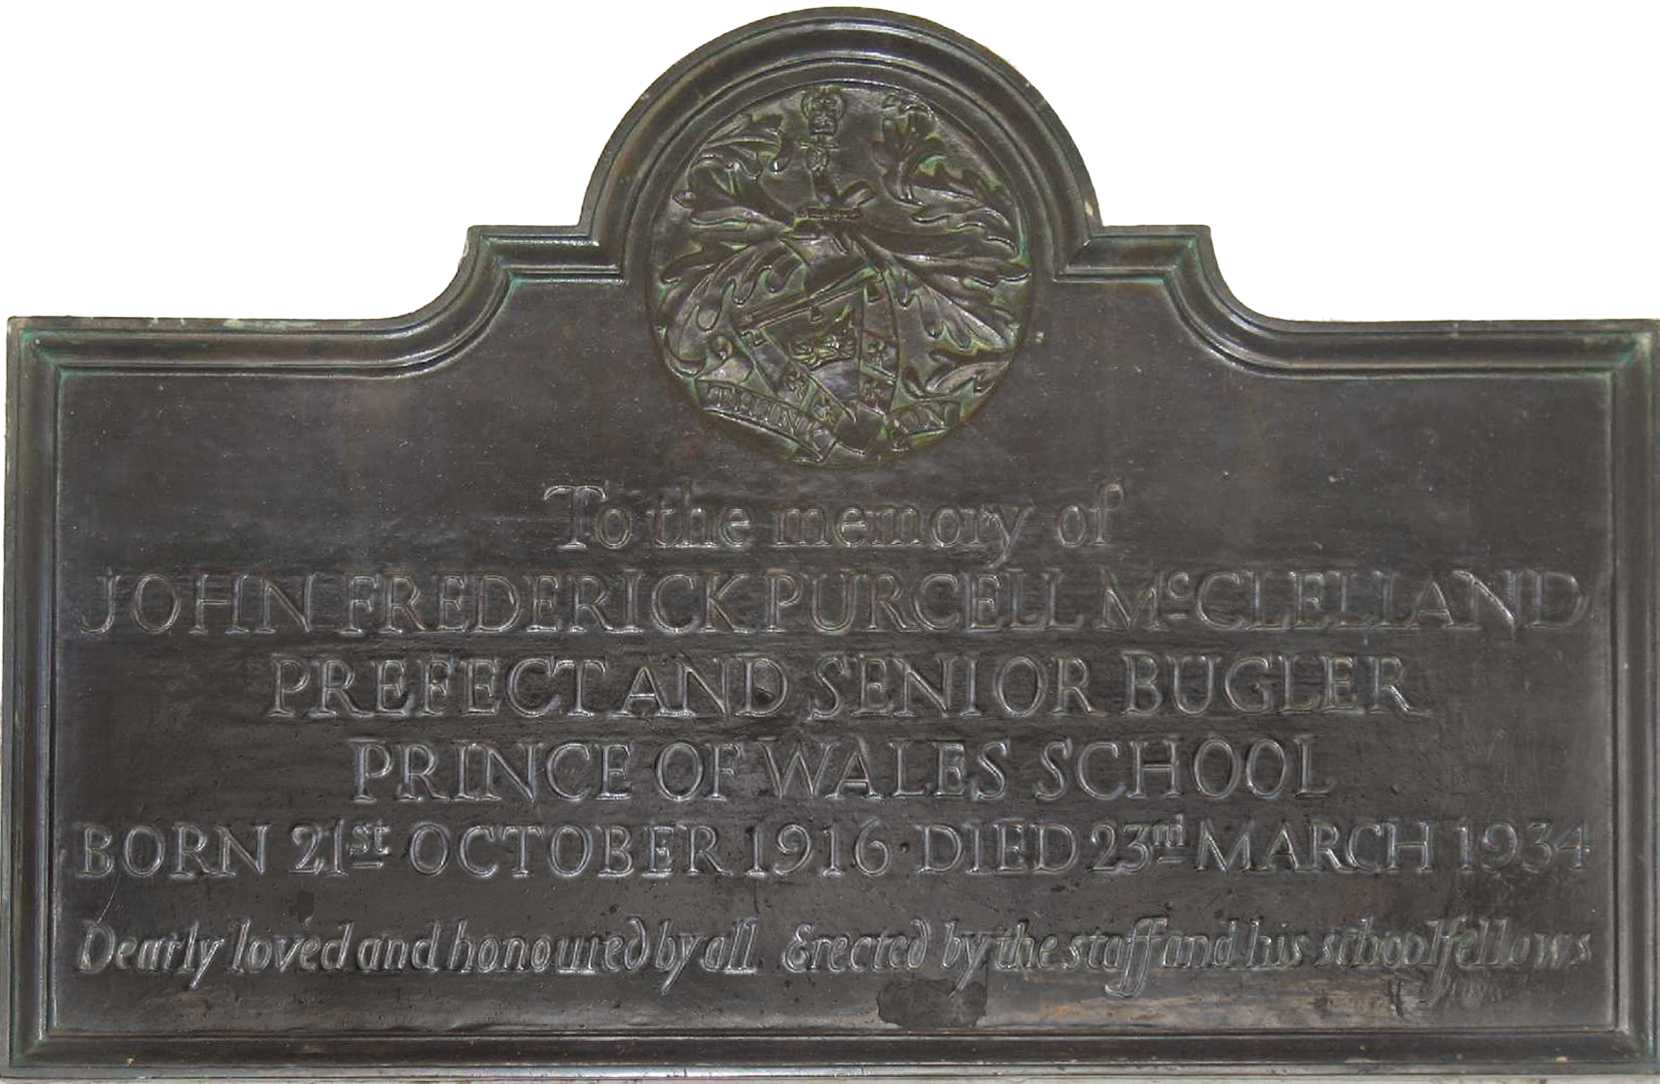 The John McClelland memorial plaque in the cloisters of the Prince of Wales School/Nairobi School